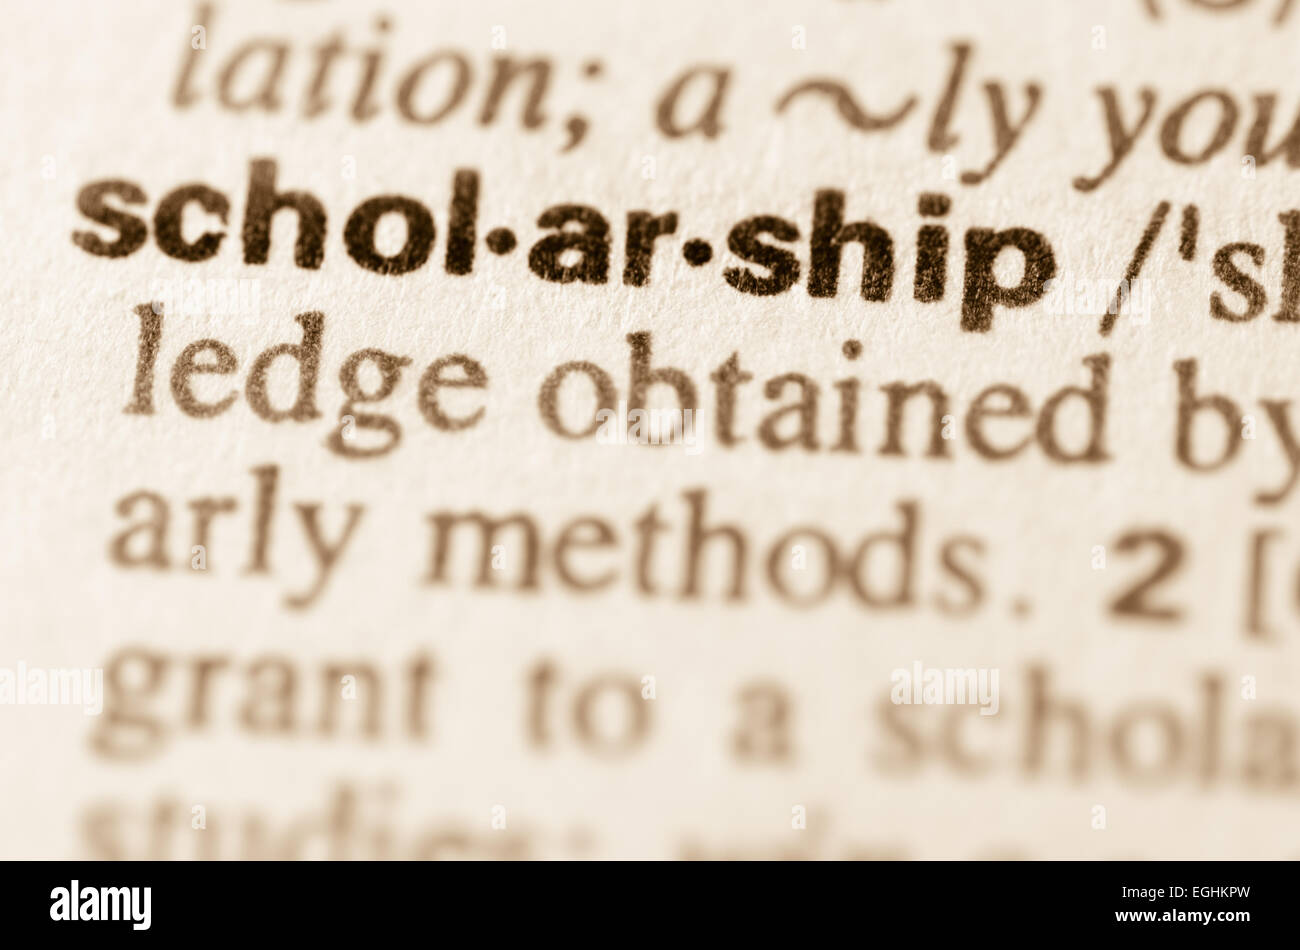 Definition of word scholarship in dictionary - Stock Image